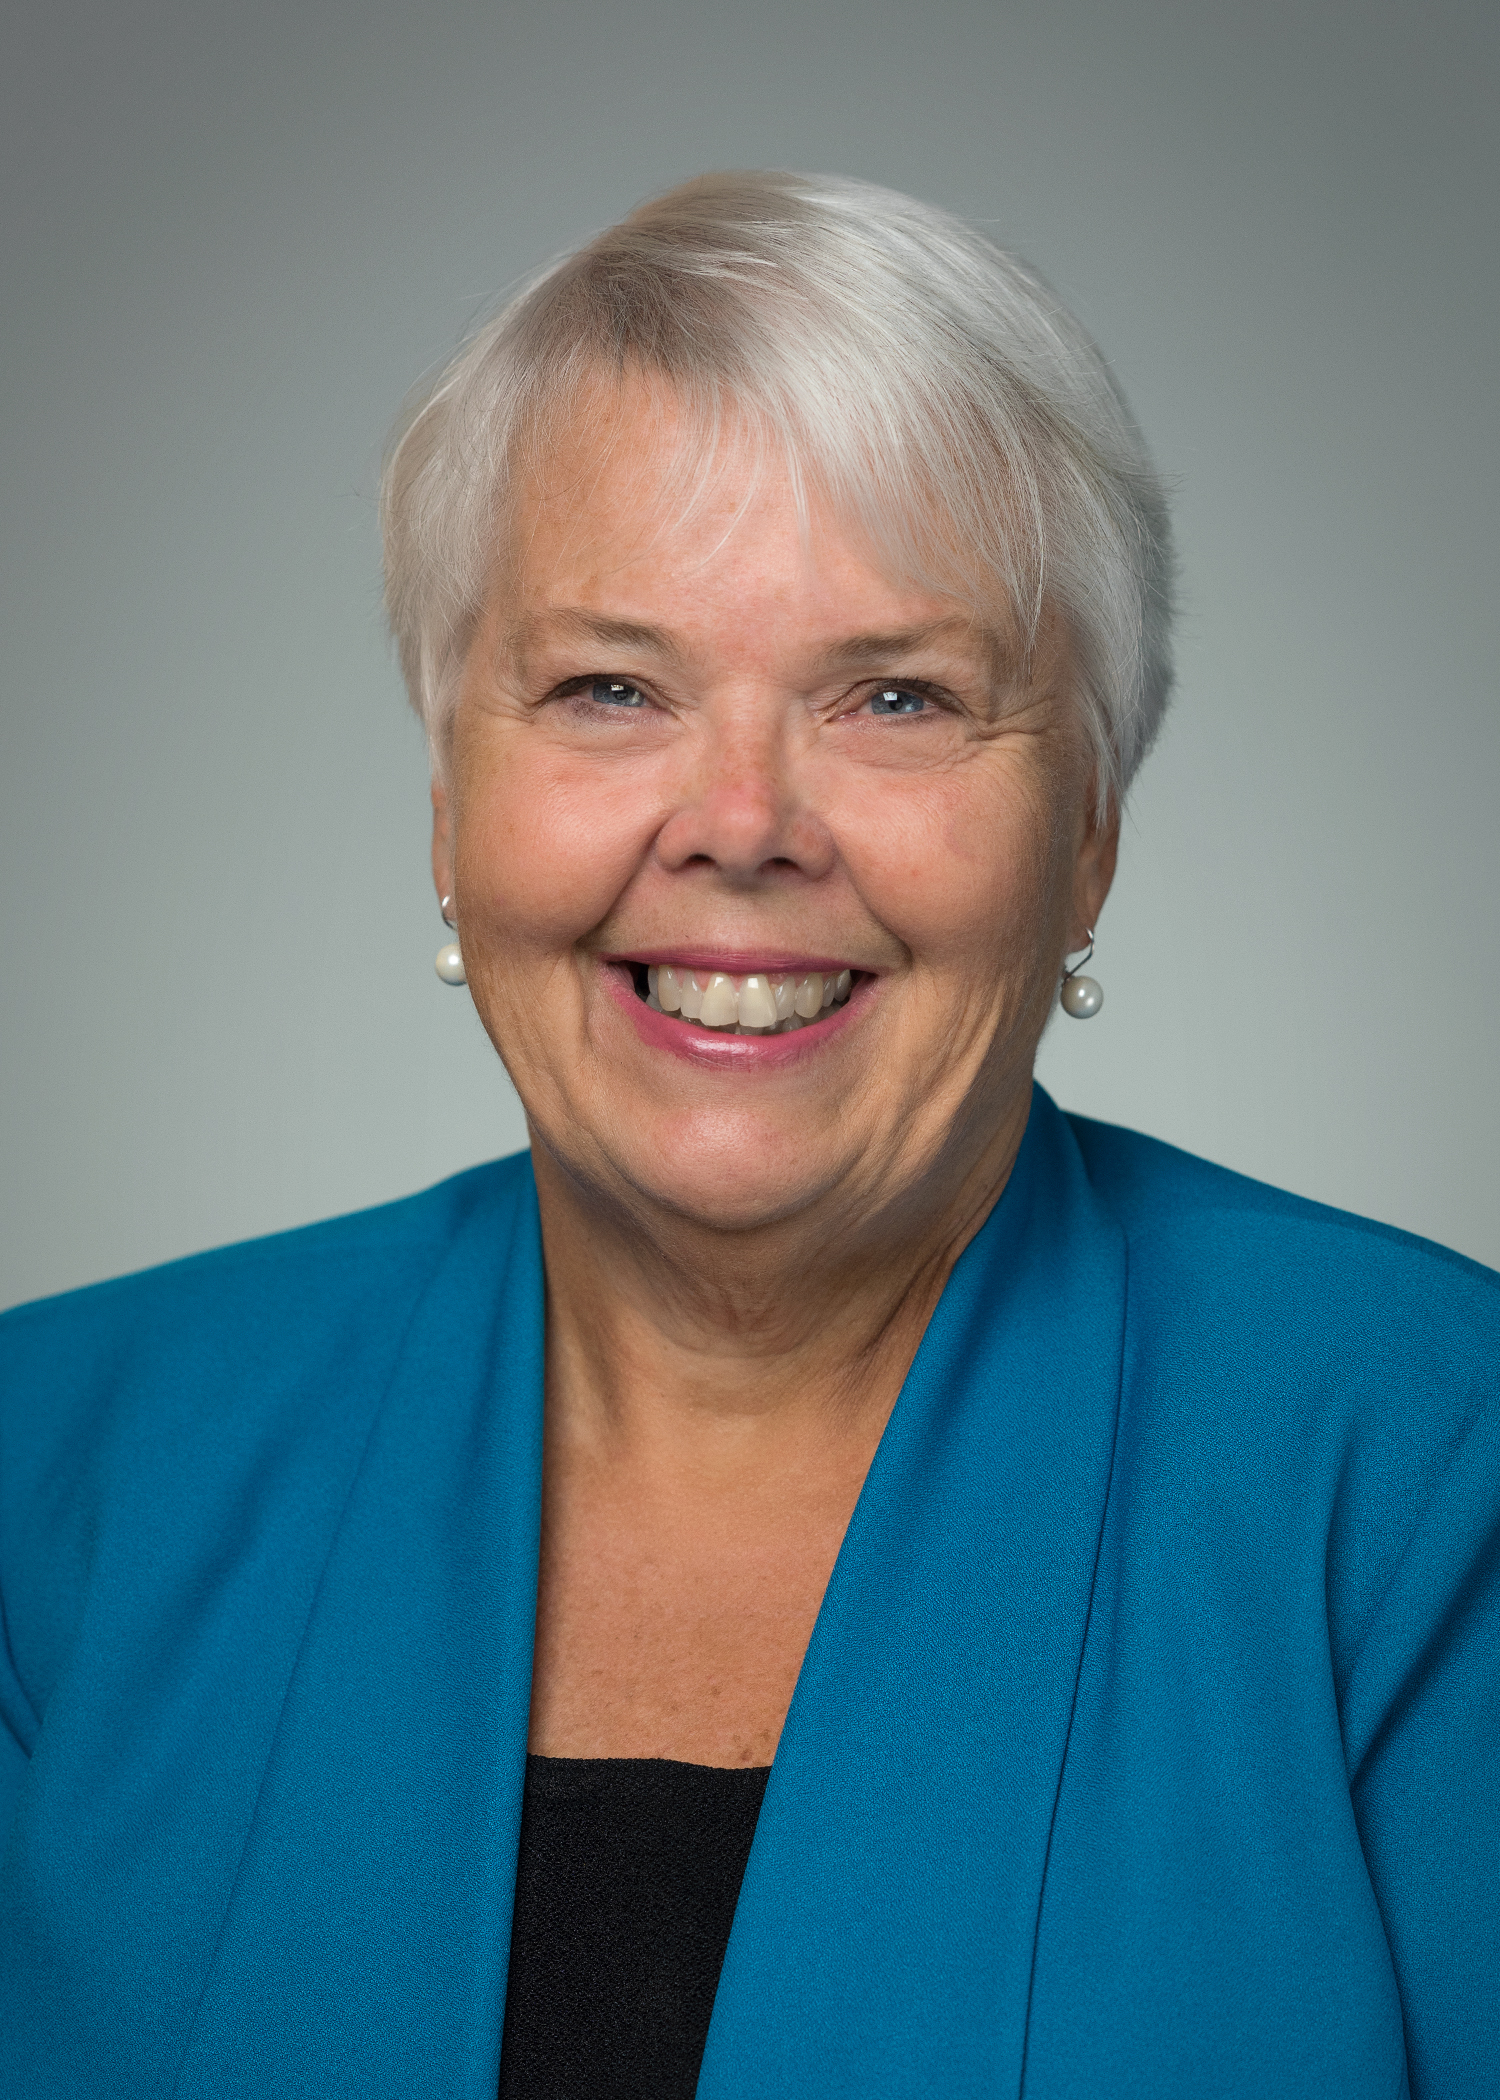 Headshot photo of Joanne Jones, RN